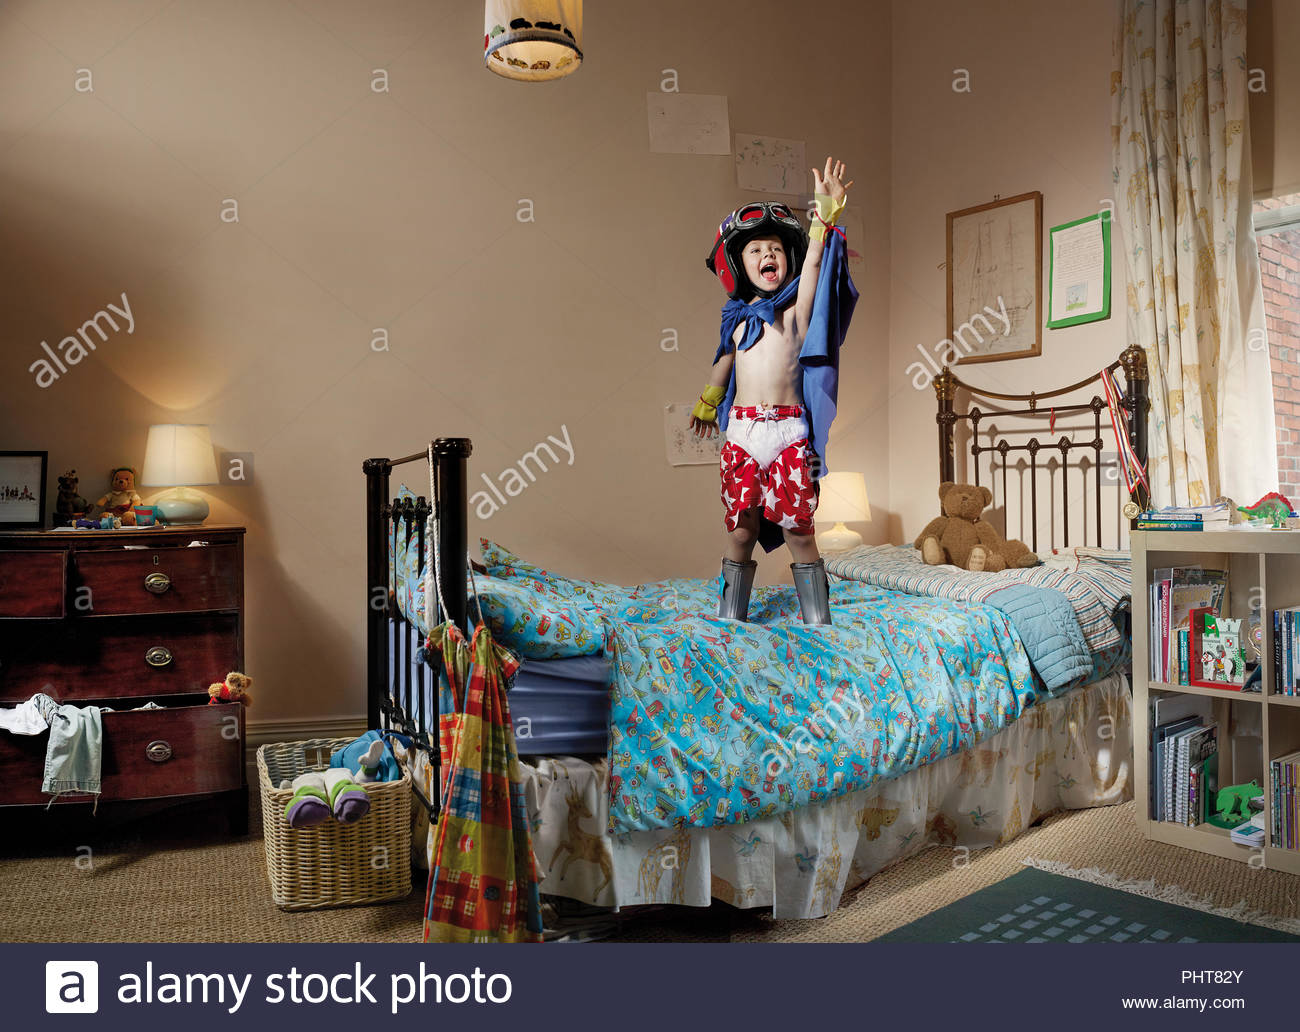 Young boy playing on bed - Stock Image